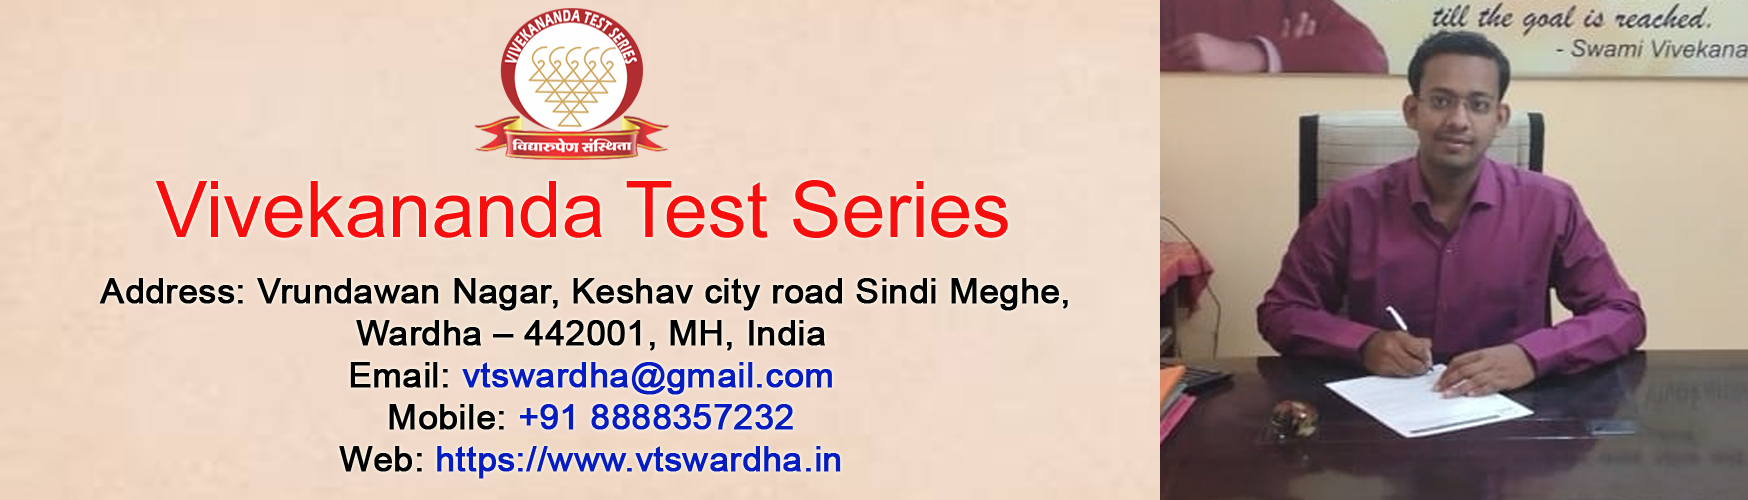 Vivekananda Test Series, Wardha